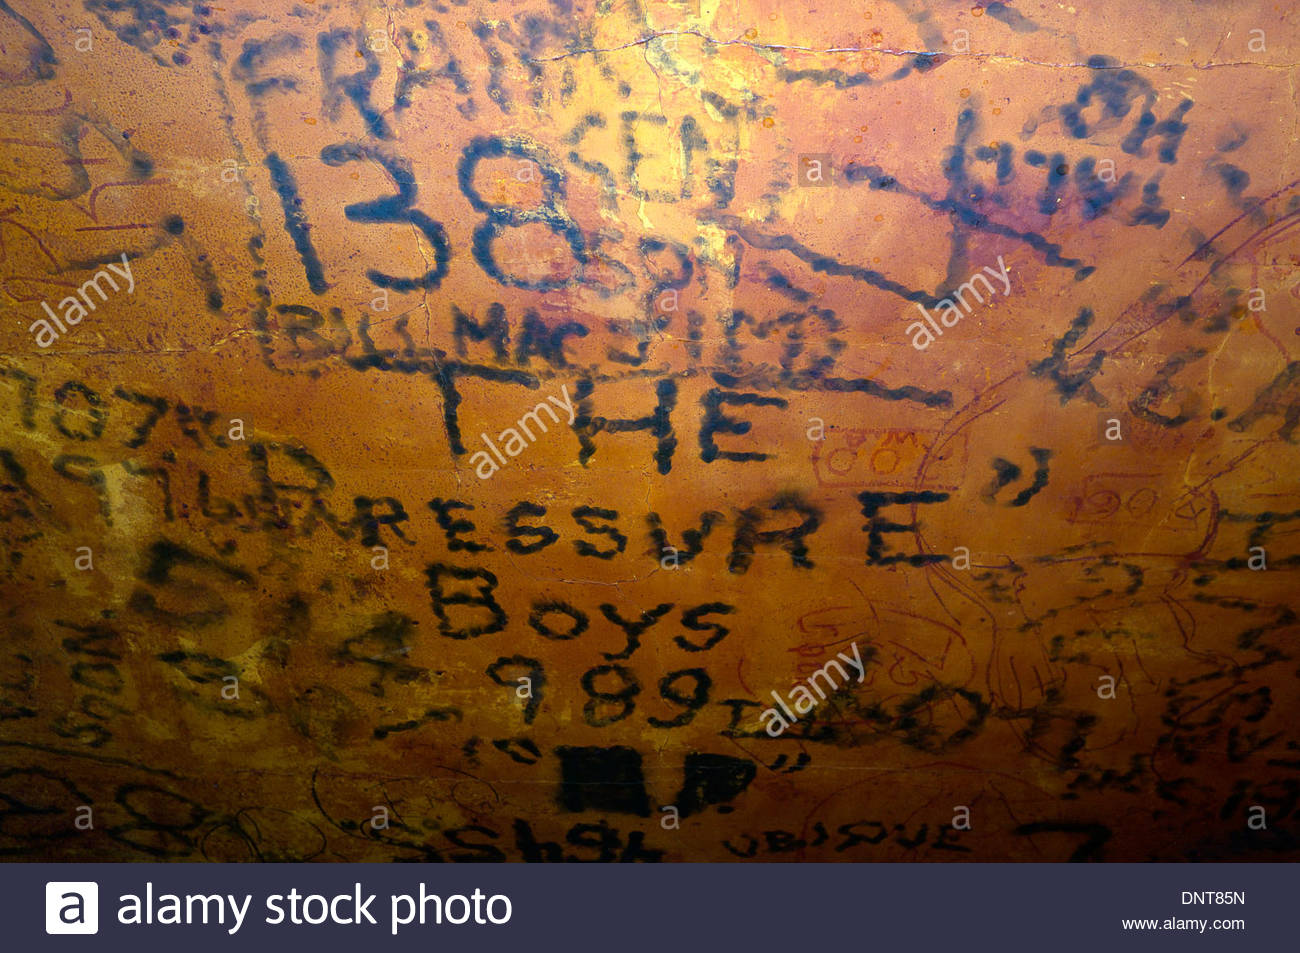 ceiling-of-the-raf-bar-of-the-eagle-public-house-where-raf-usaf-personnel-DNT85N.jpg